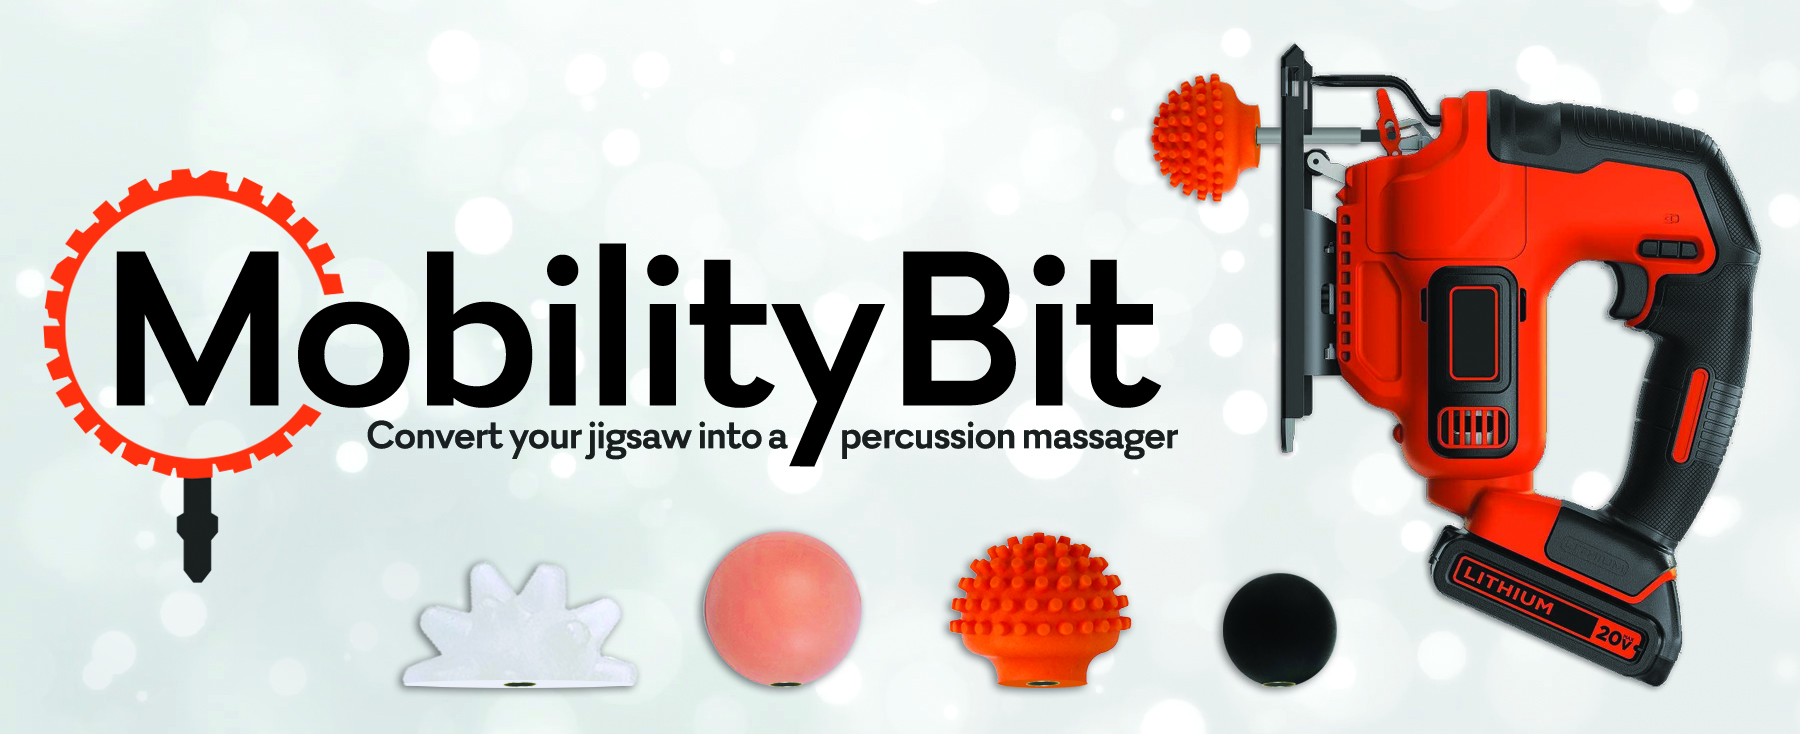 Mobility Bit - Convert Your Jigsaw Into A Percussion Massager